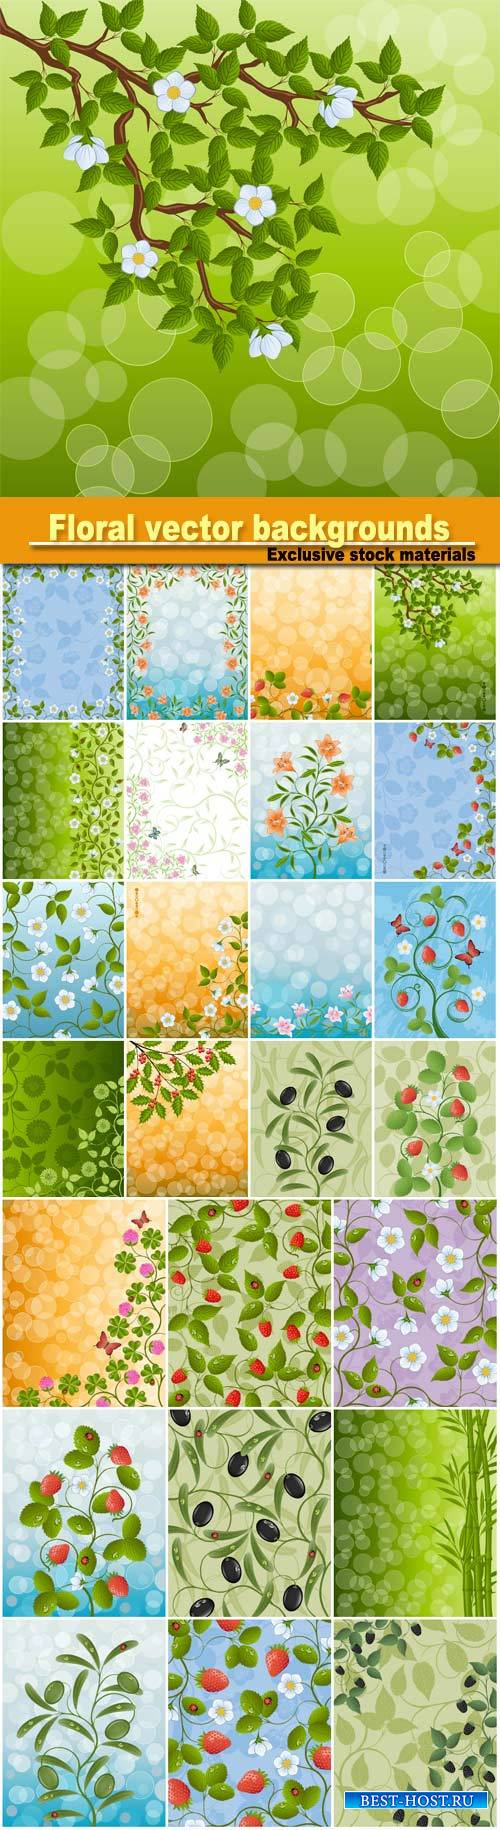 Vector background with flowers and berries